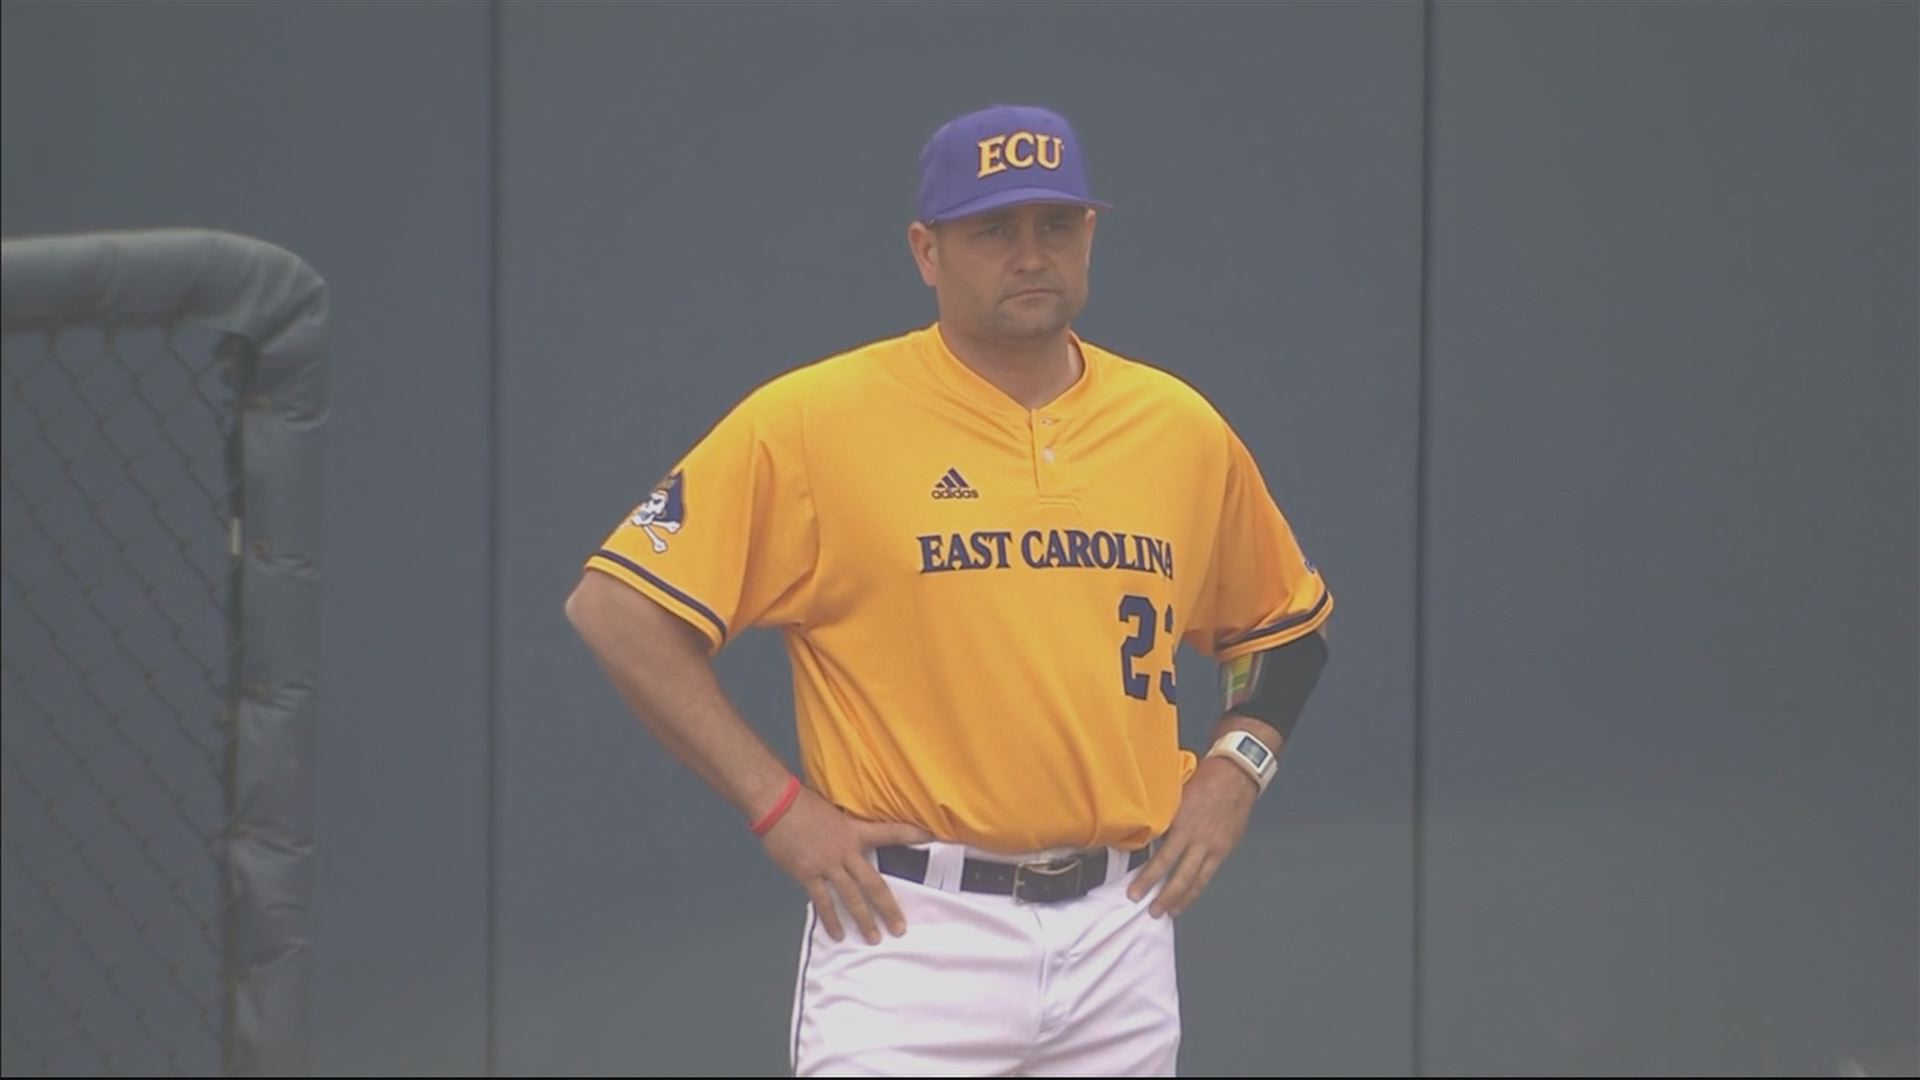 cliff-godwin-ecu-baseball_353197